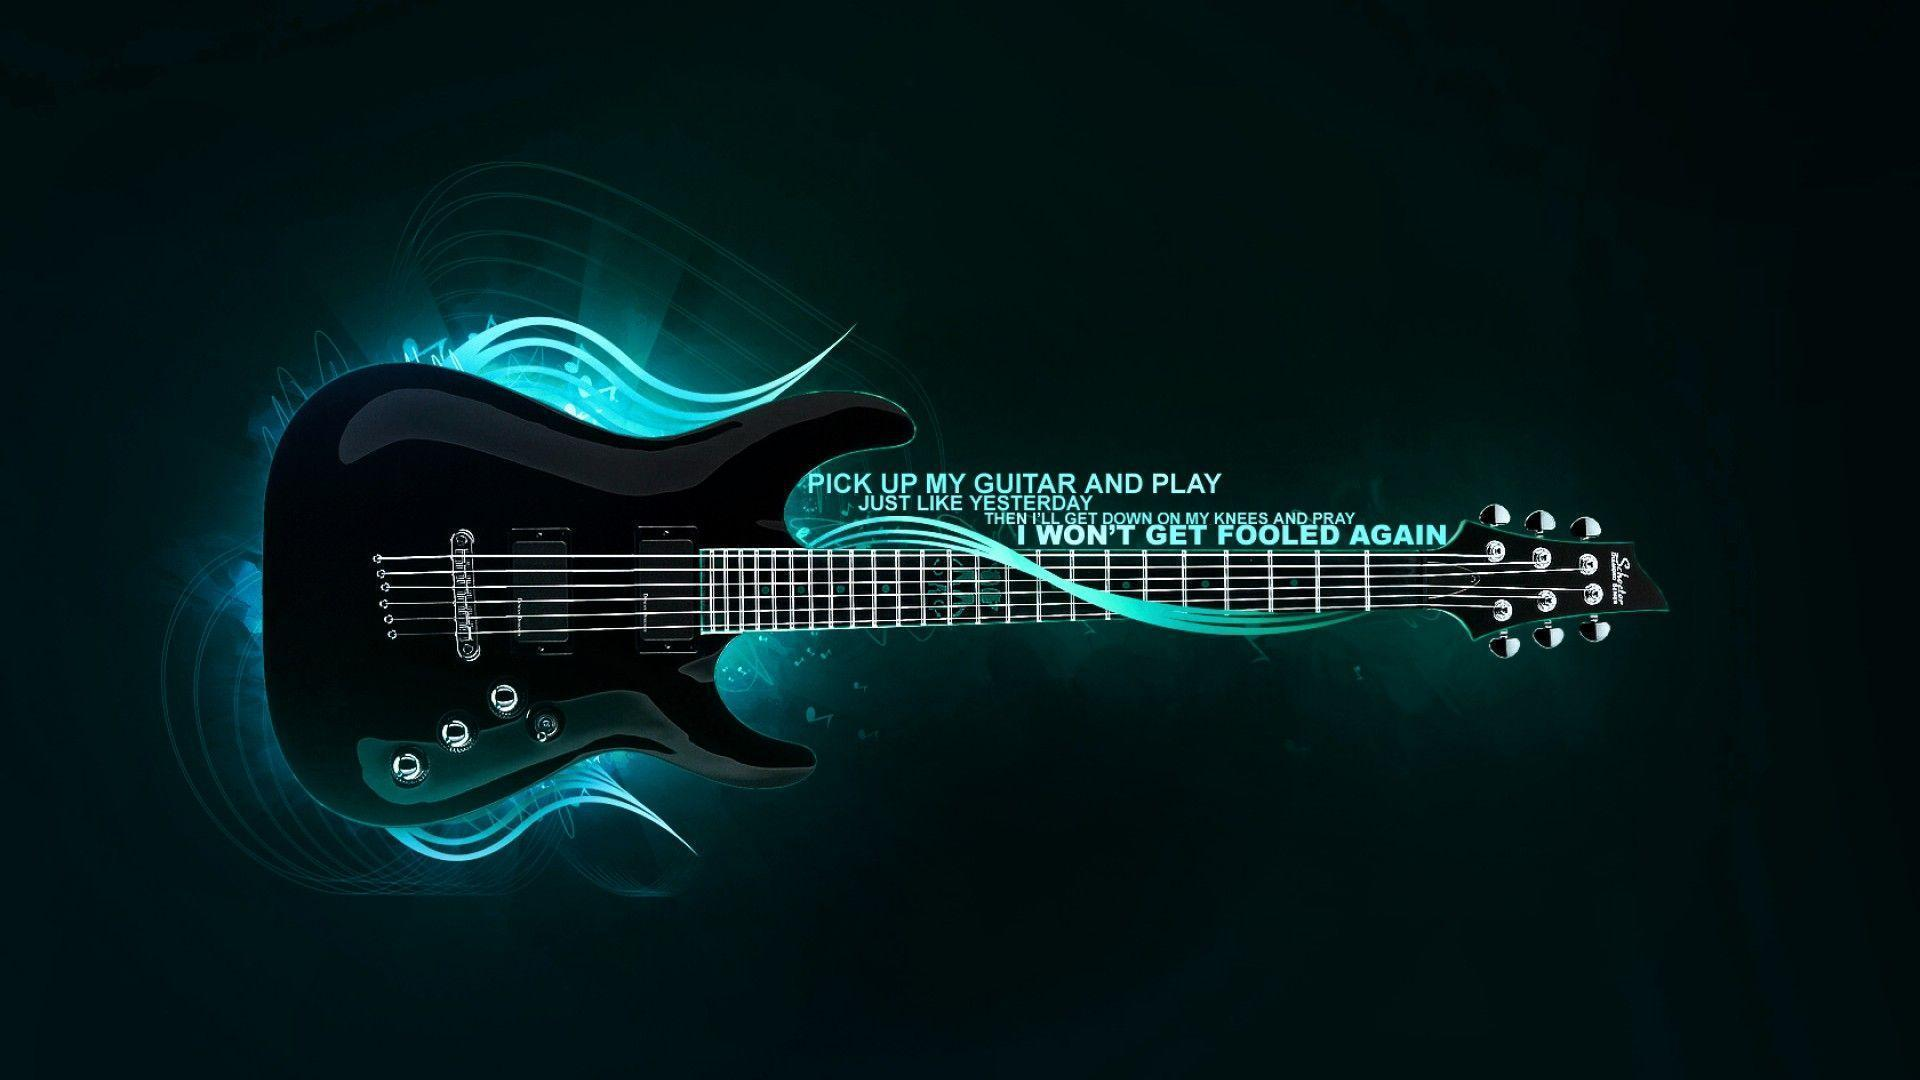 Guitar Image Hd Hd Background Wallpaper 41 HD Wallpapers | www ...